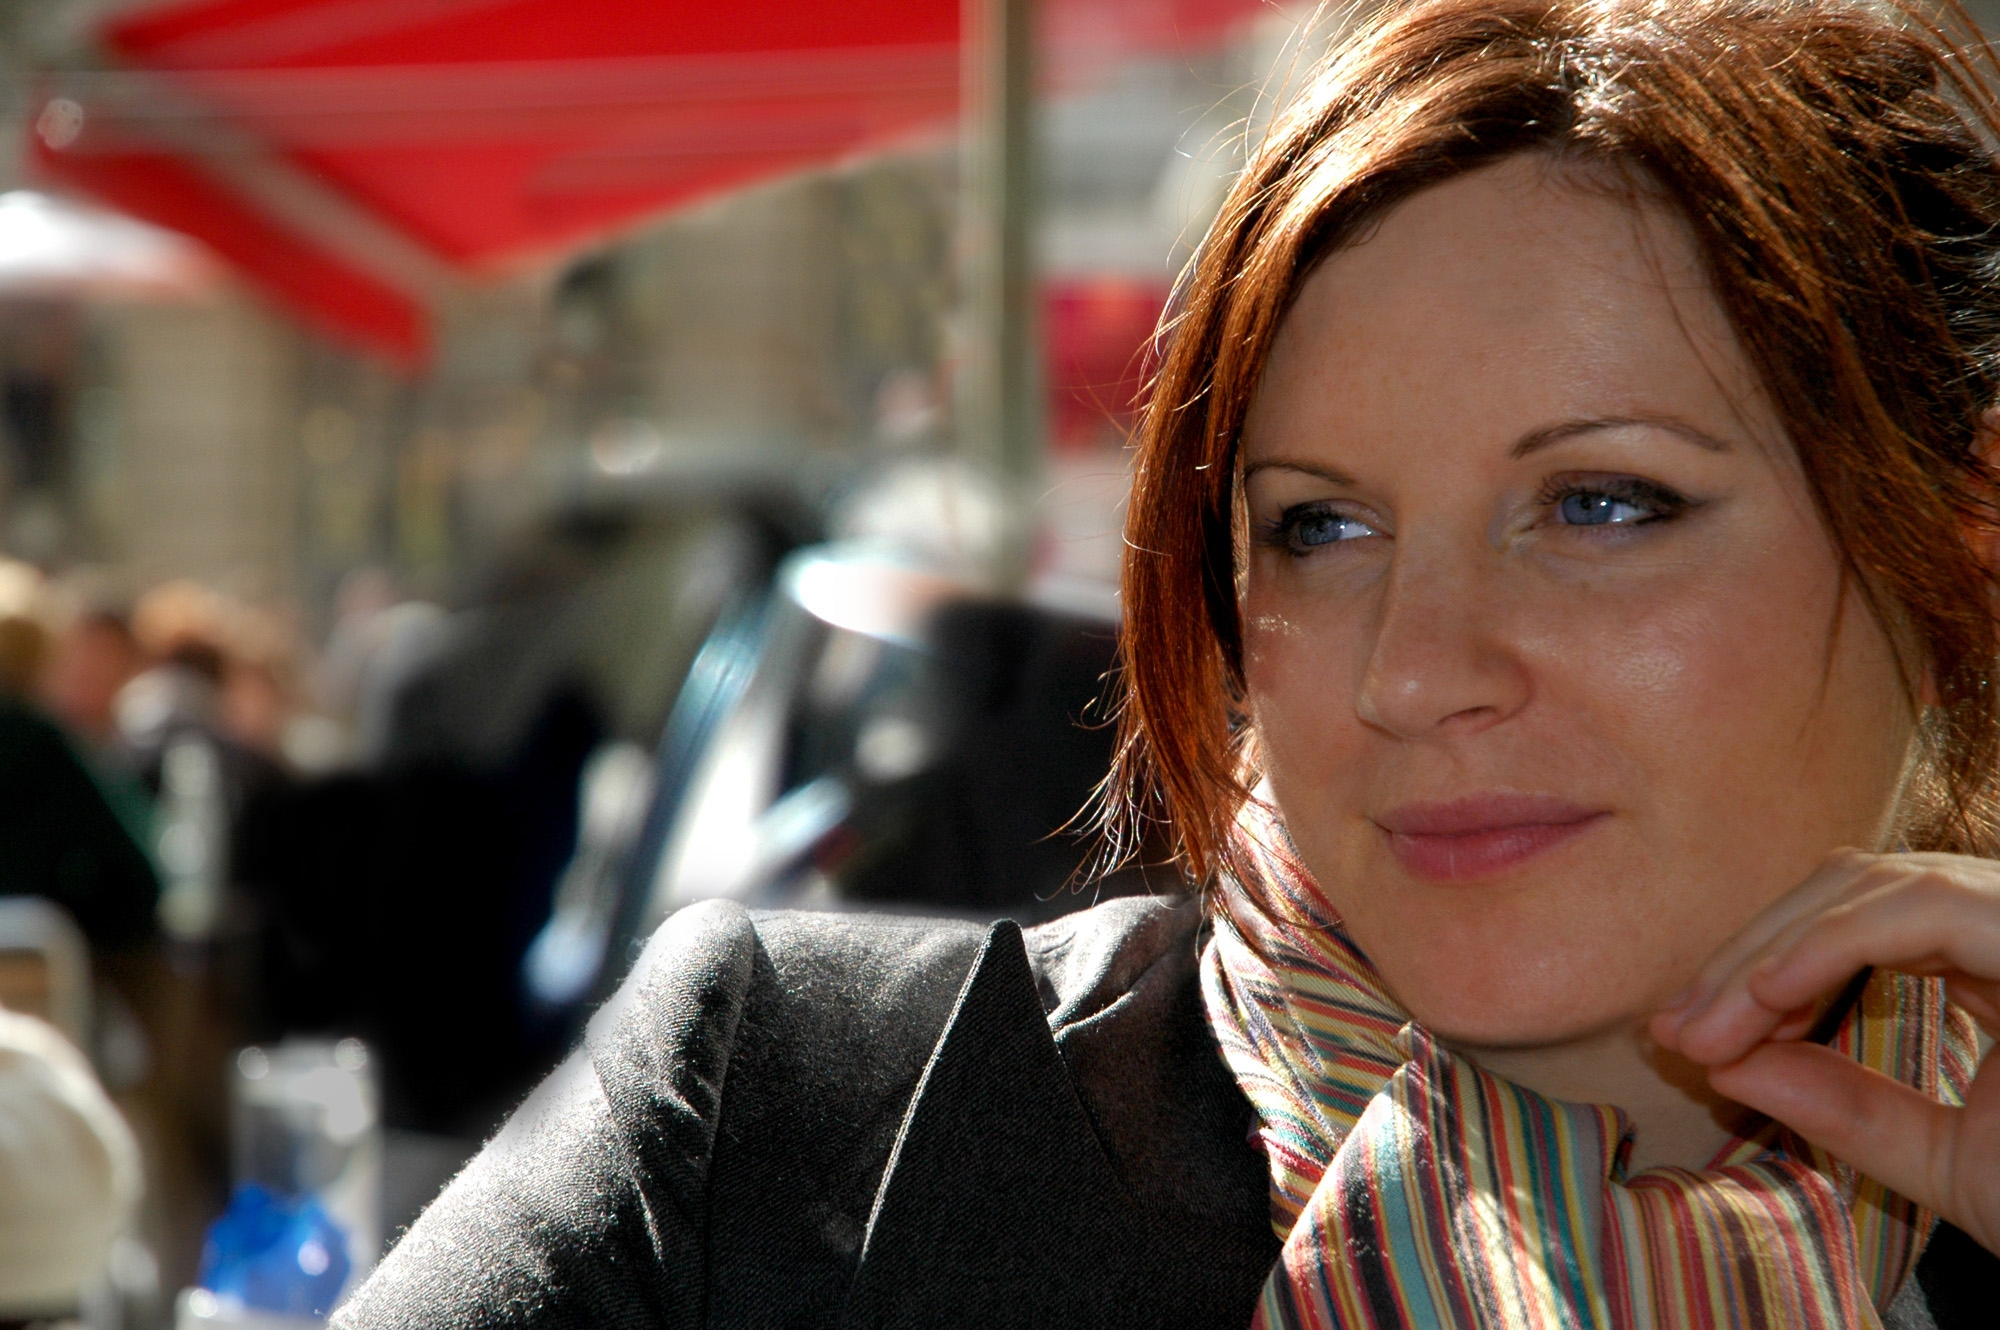 Gisèle Scanlon   Vice President  Gisèle is studying the M.Phil in Creative Writing at the Oscar Wilde Centre for Irish Literature in Trinity. She is a writer and visual artist of considerable international reputation from Listowel, Co. Kerry. A recipient of a Galaxy Irish Book Award and two British literary awards from the International Academy of Digital Arts and Sciences, she is acutely aware of the importance of arts and cultural education and the challenges you face. Leaving a career as a culture critic abroad, she has returned home to study a Masters and a PhD at Trinity. She loves representing graduate students in the GSU and is available to chat with any class reps in her Faculty.   vicepresident@tcdgsu.ie